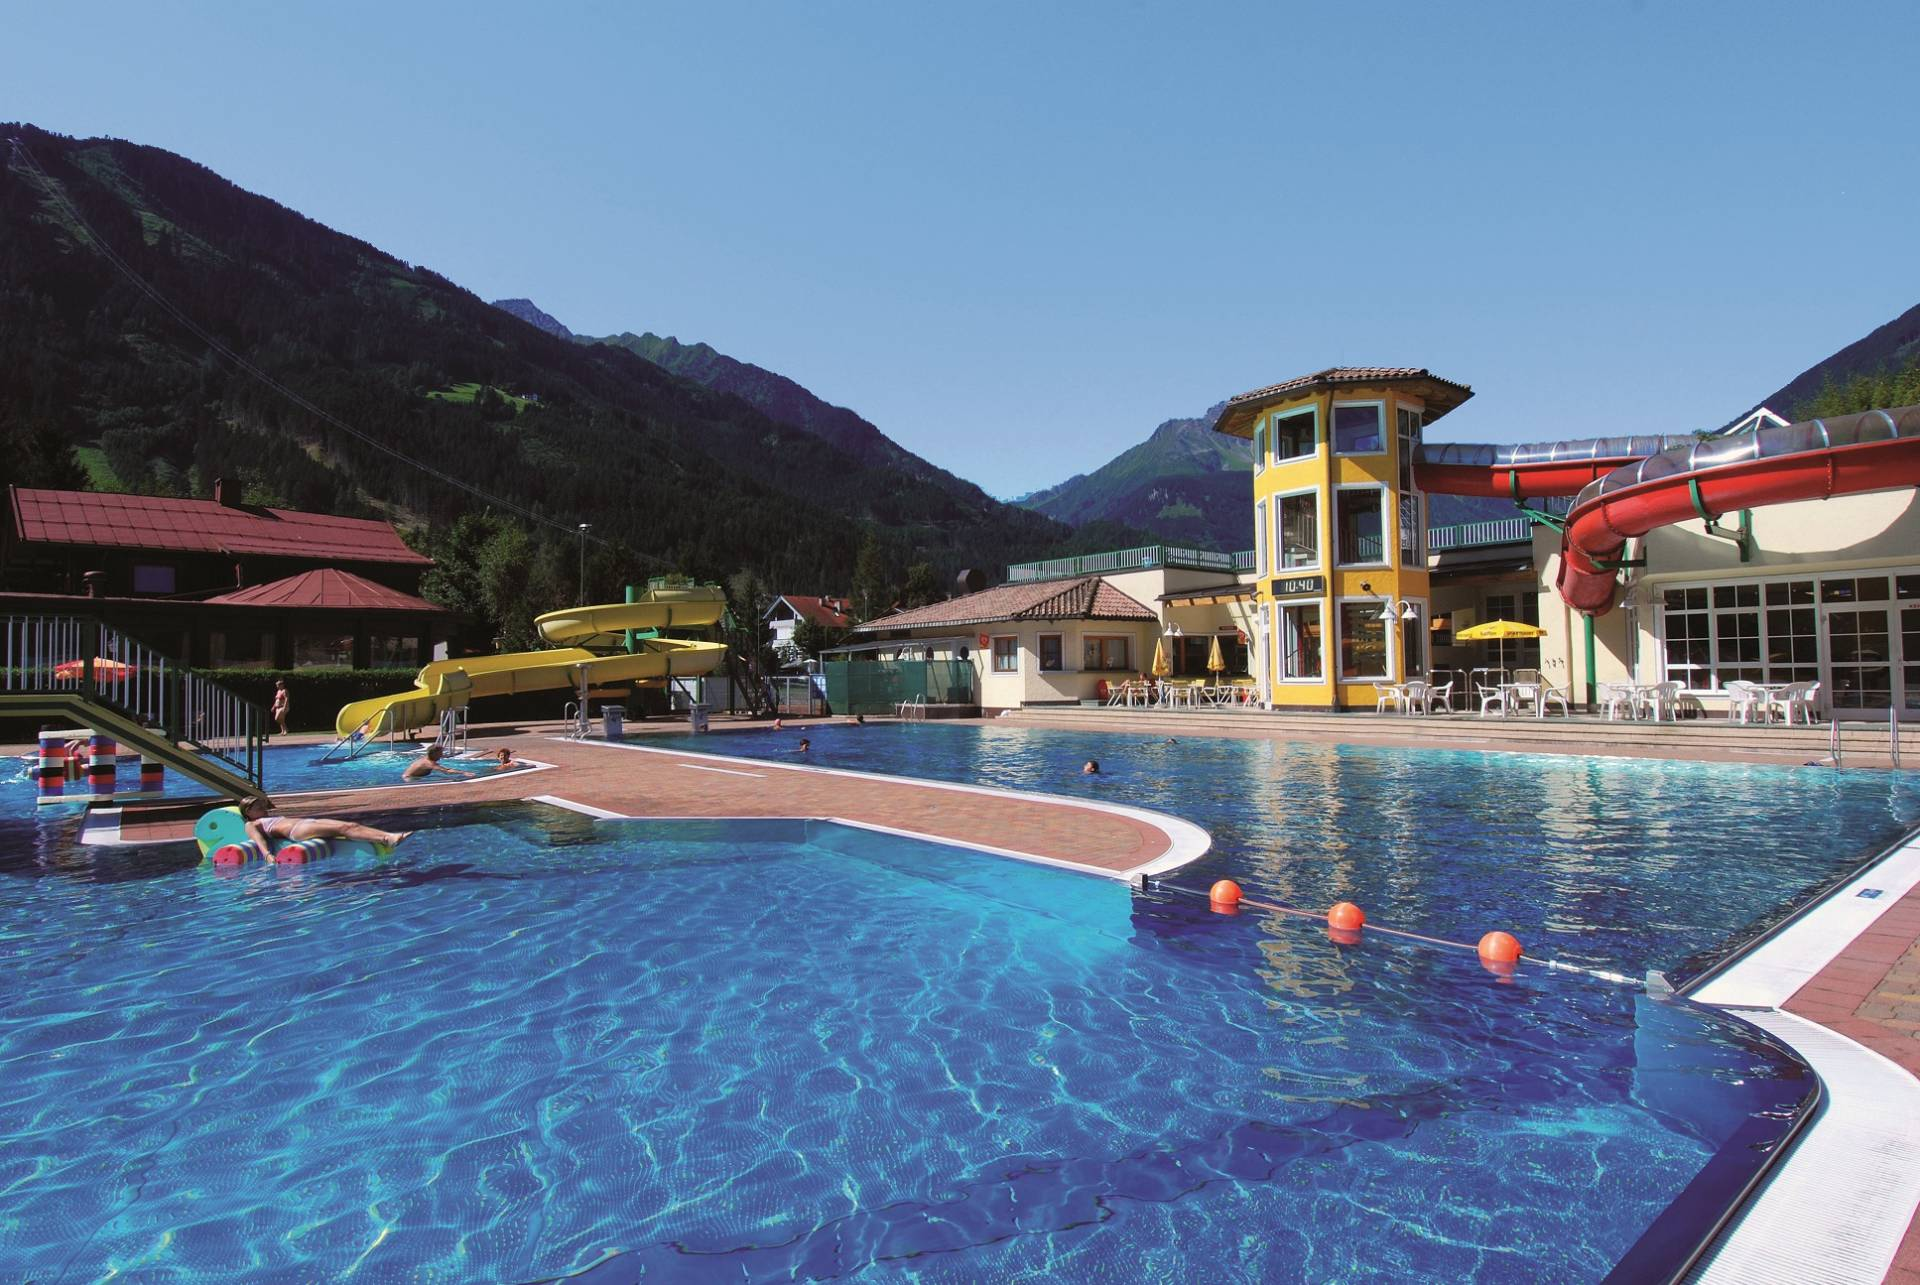 The Mayrhofen adventure pool offers a spacious outdoor pool for lots of swimming fun.